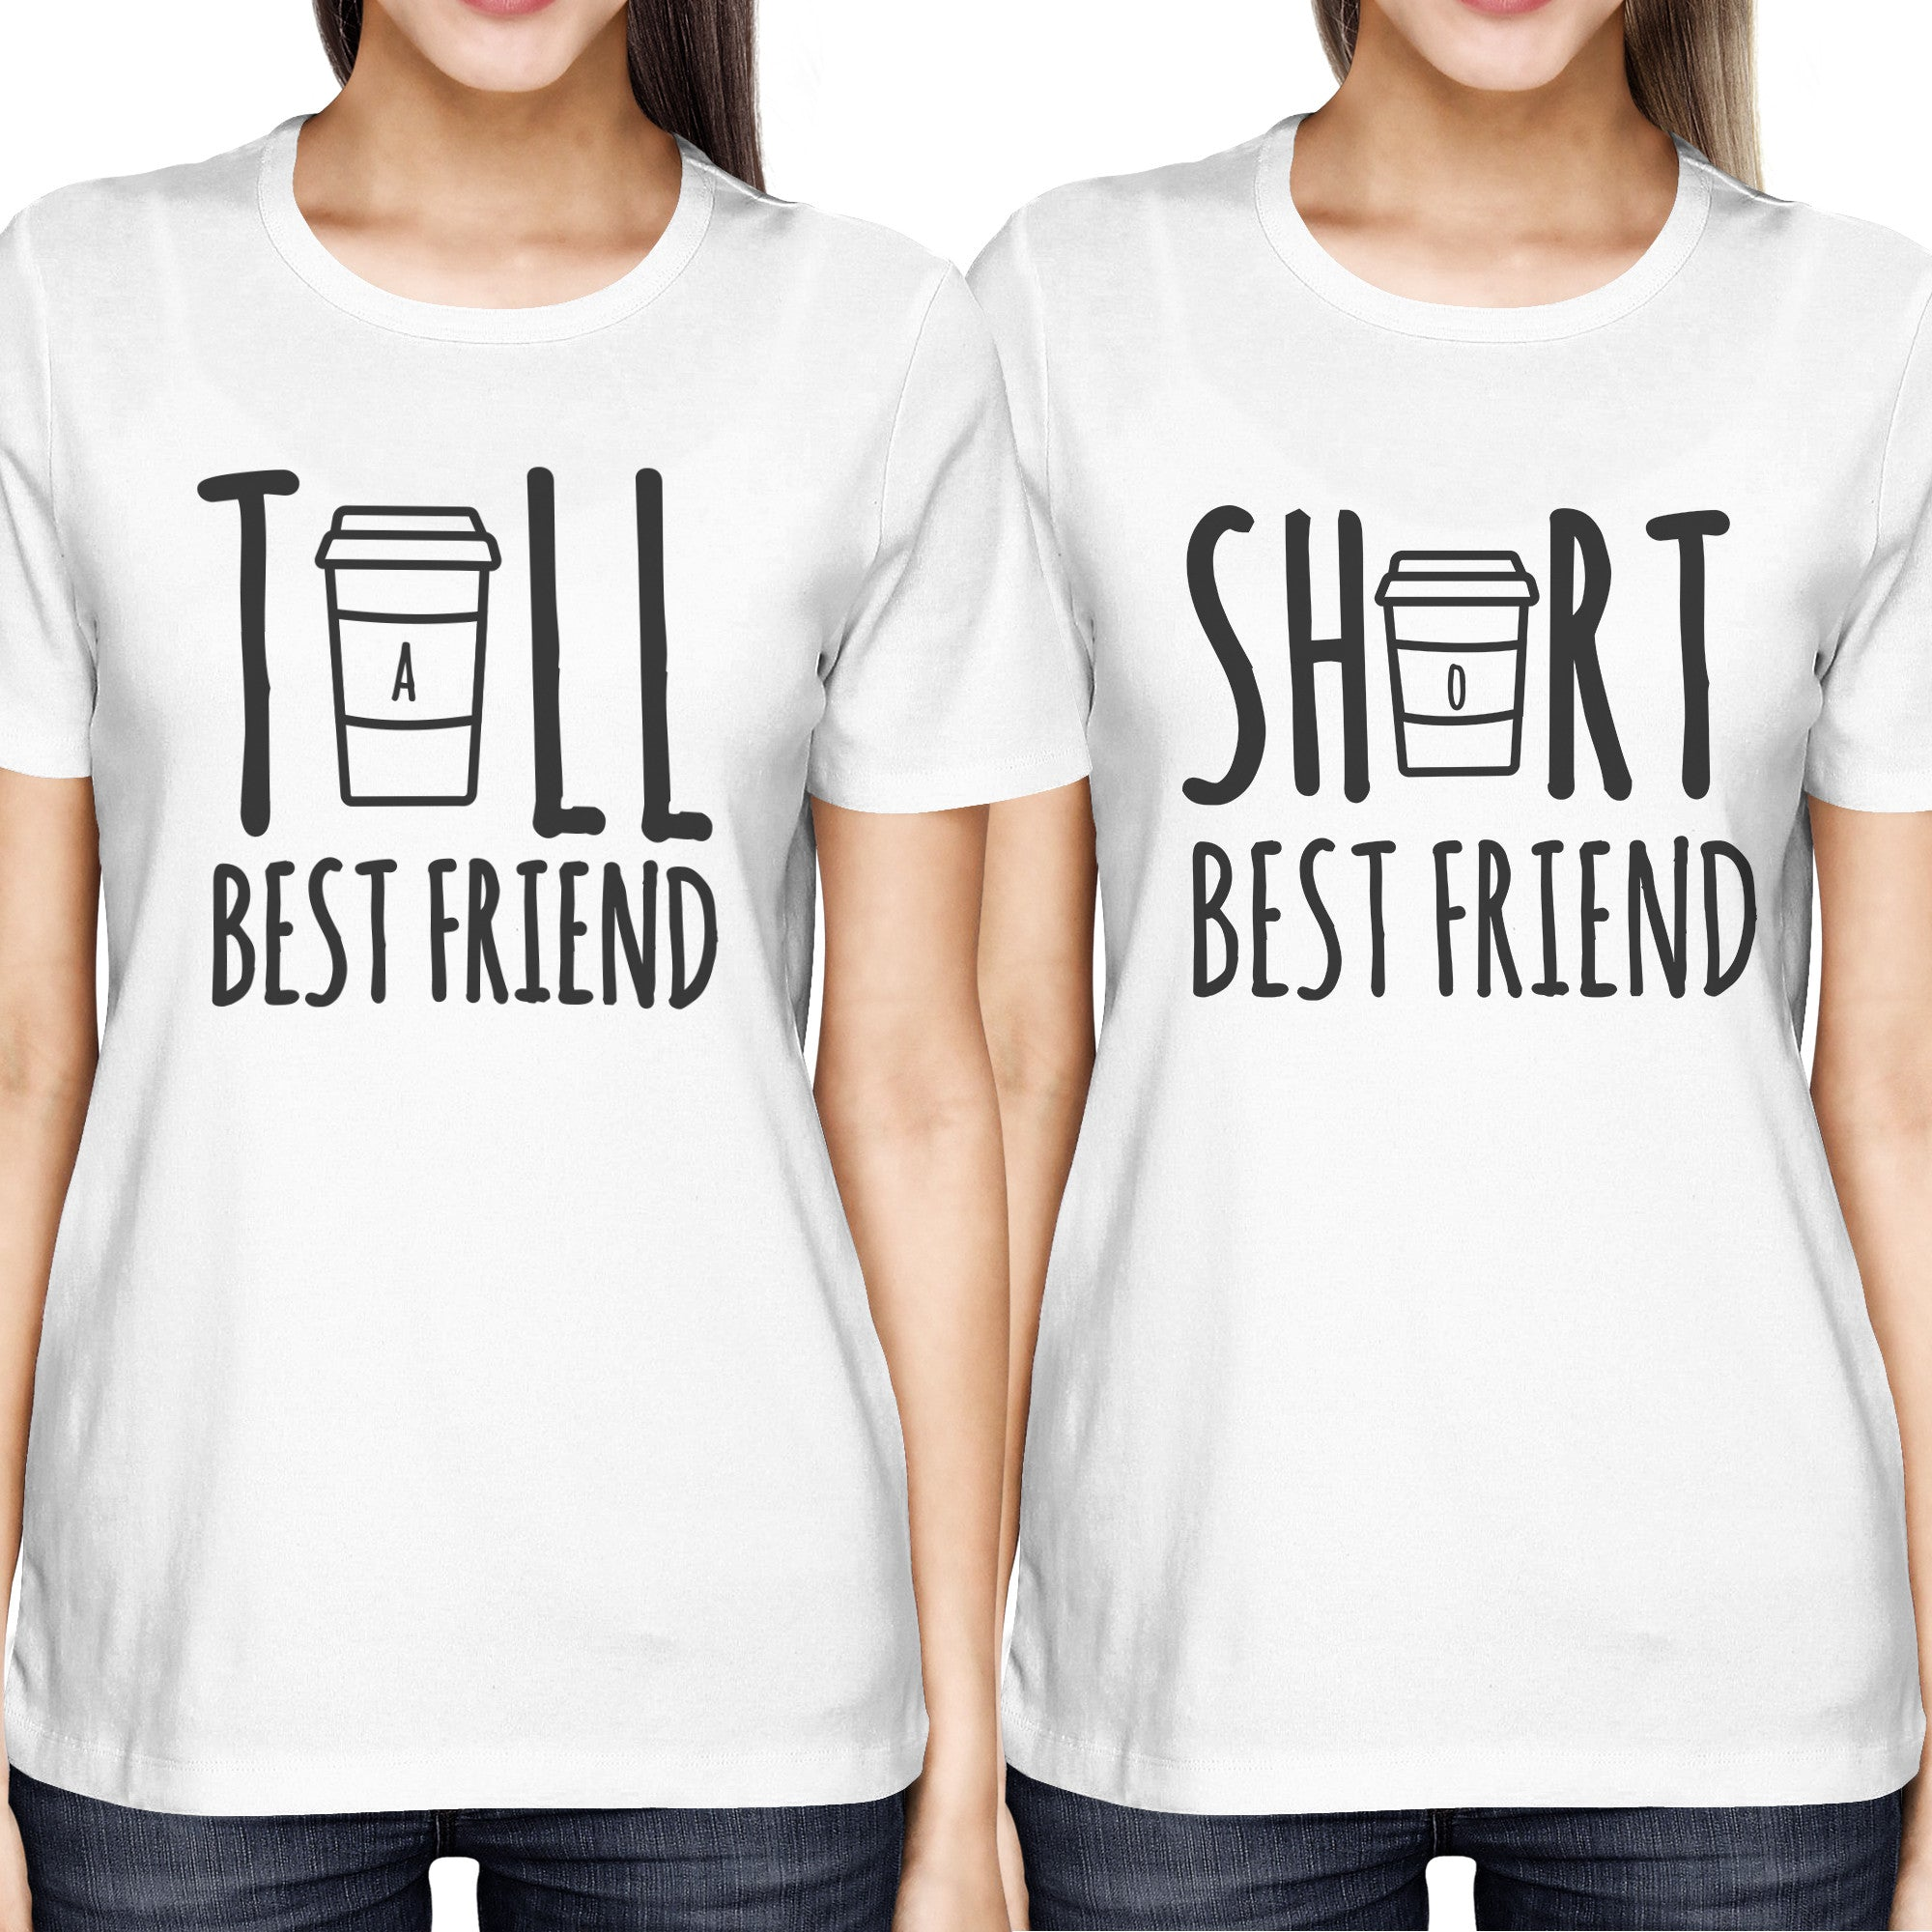 bff t shirt - best friend matching t-shirts | unique gifts for